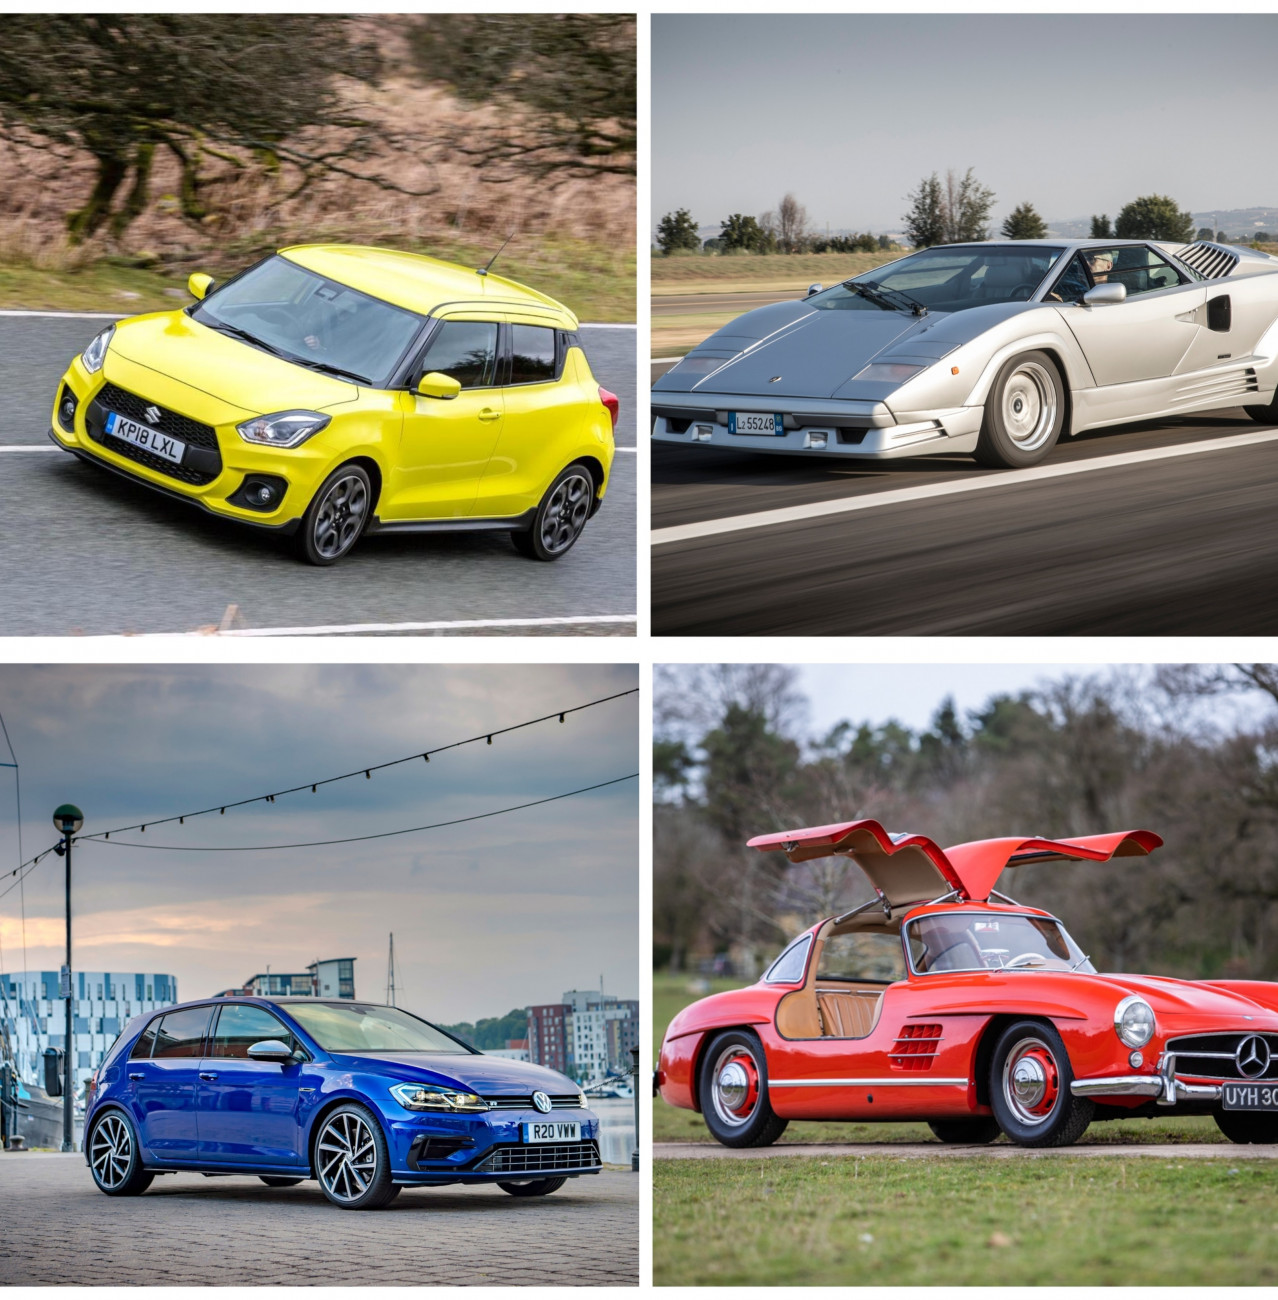 Are modern hot hatches as fast as iconic supercars of the past?